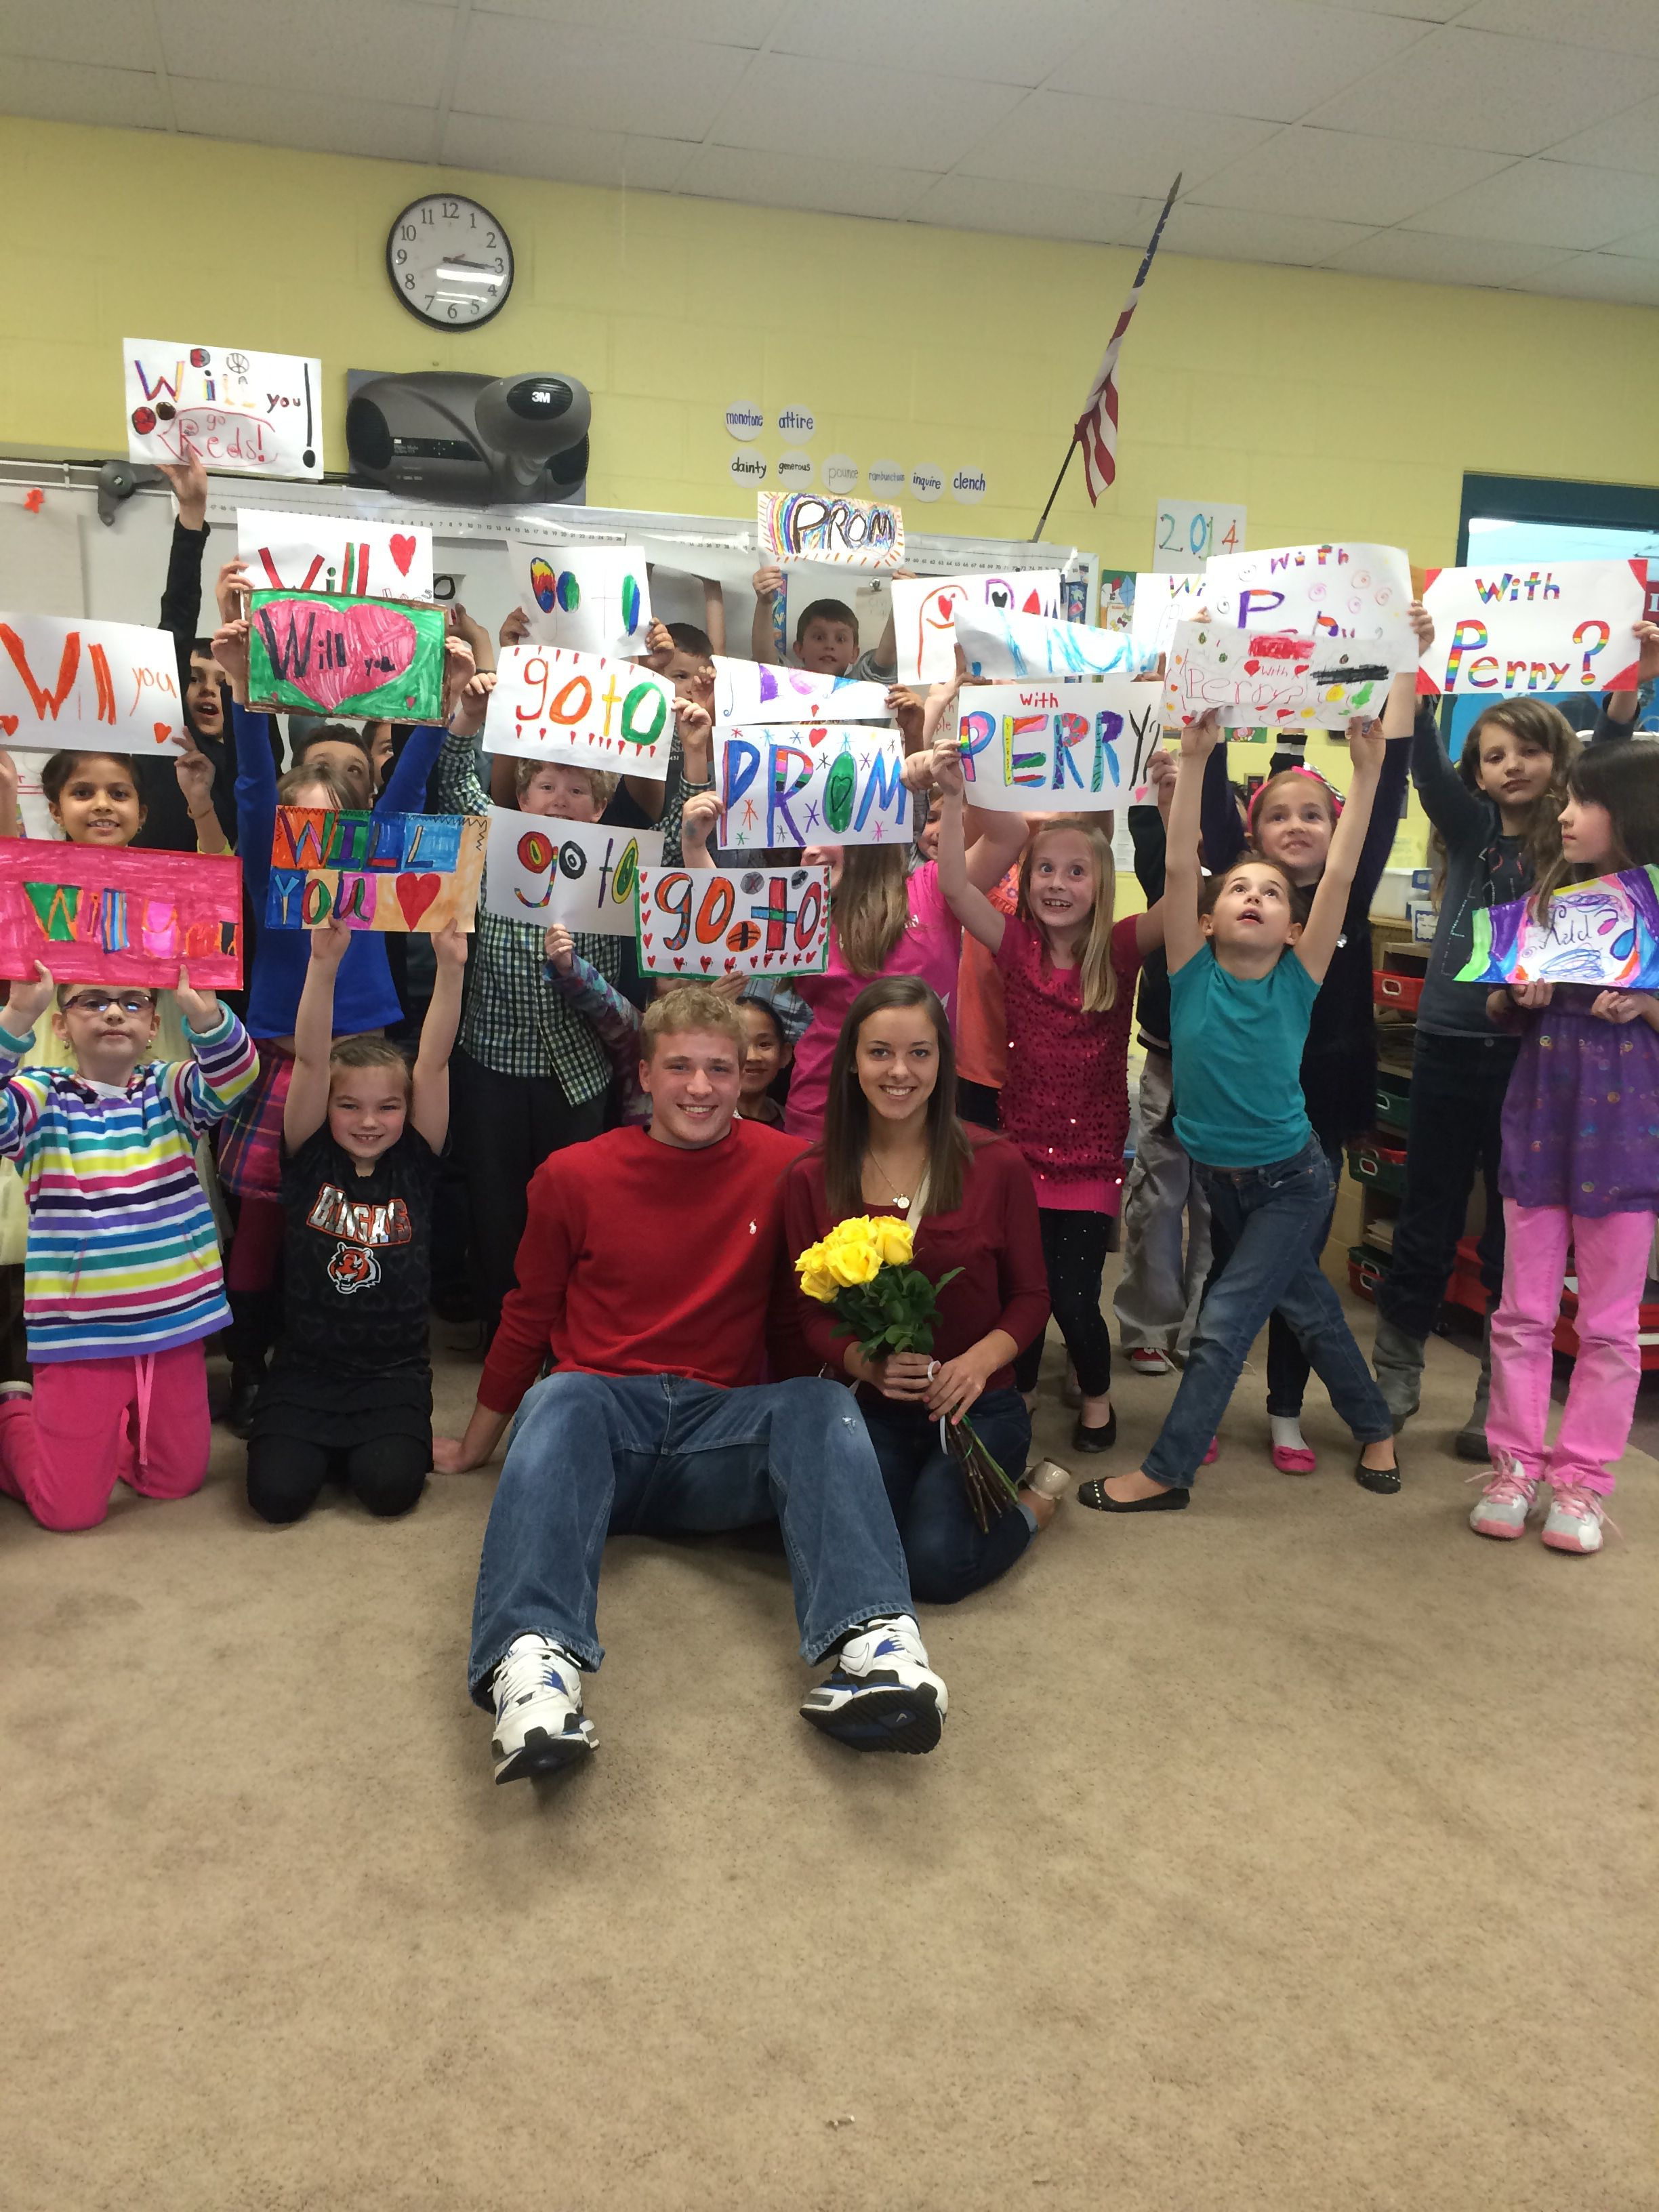 Perry let my second graders ask for him!